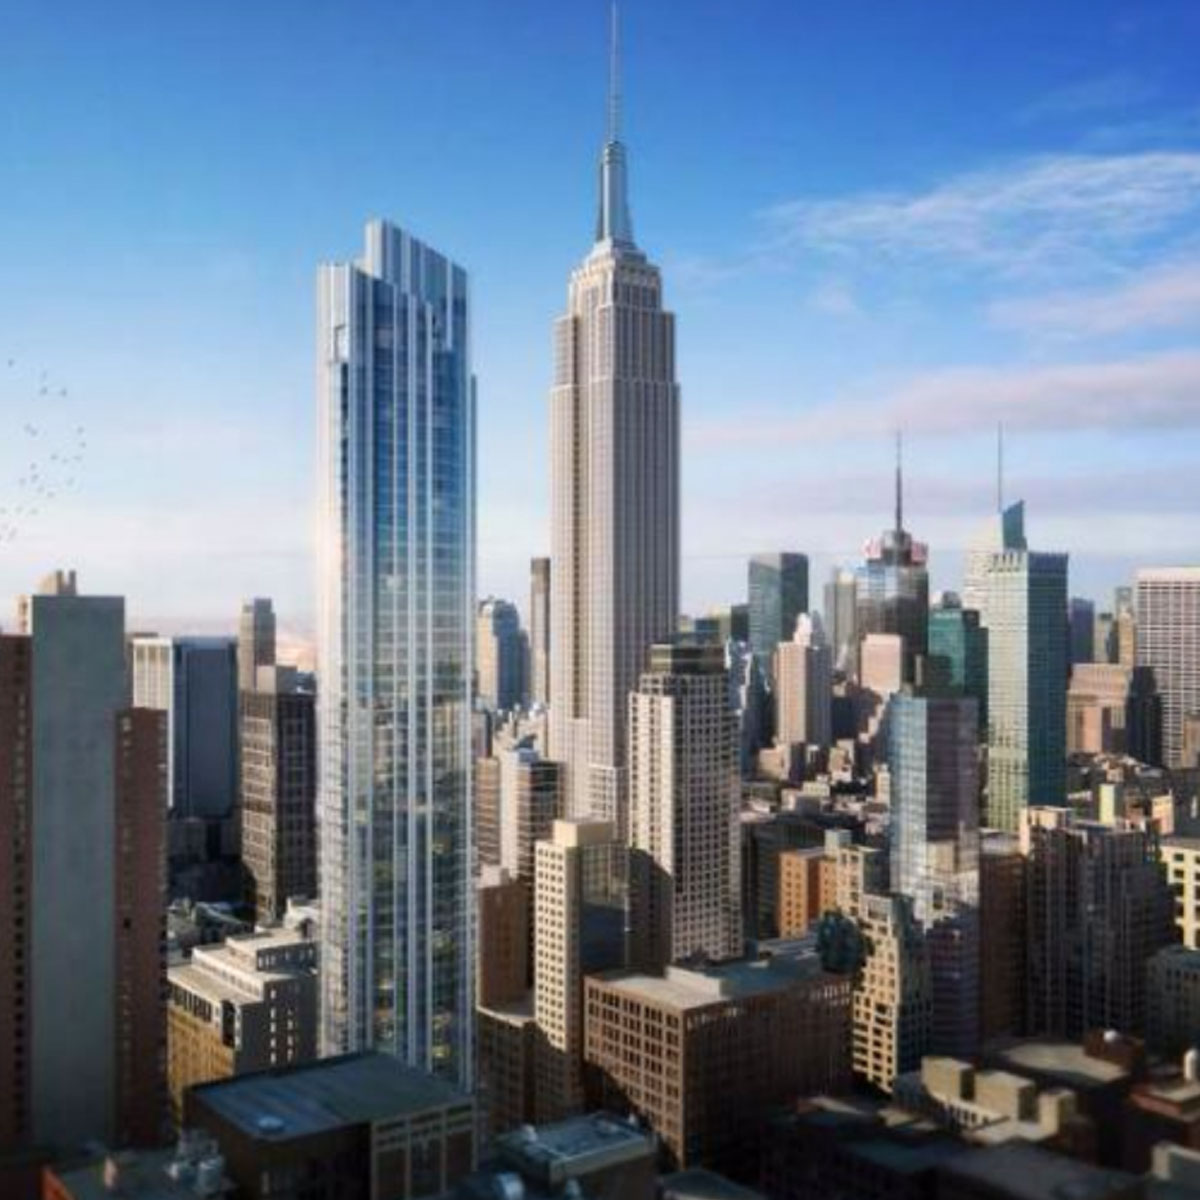 126 Madison Avenue Rising into NoMad Skyline